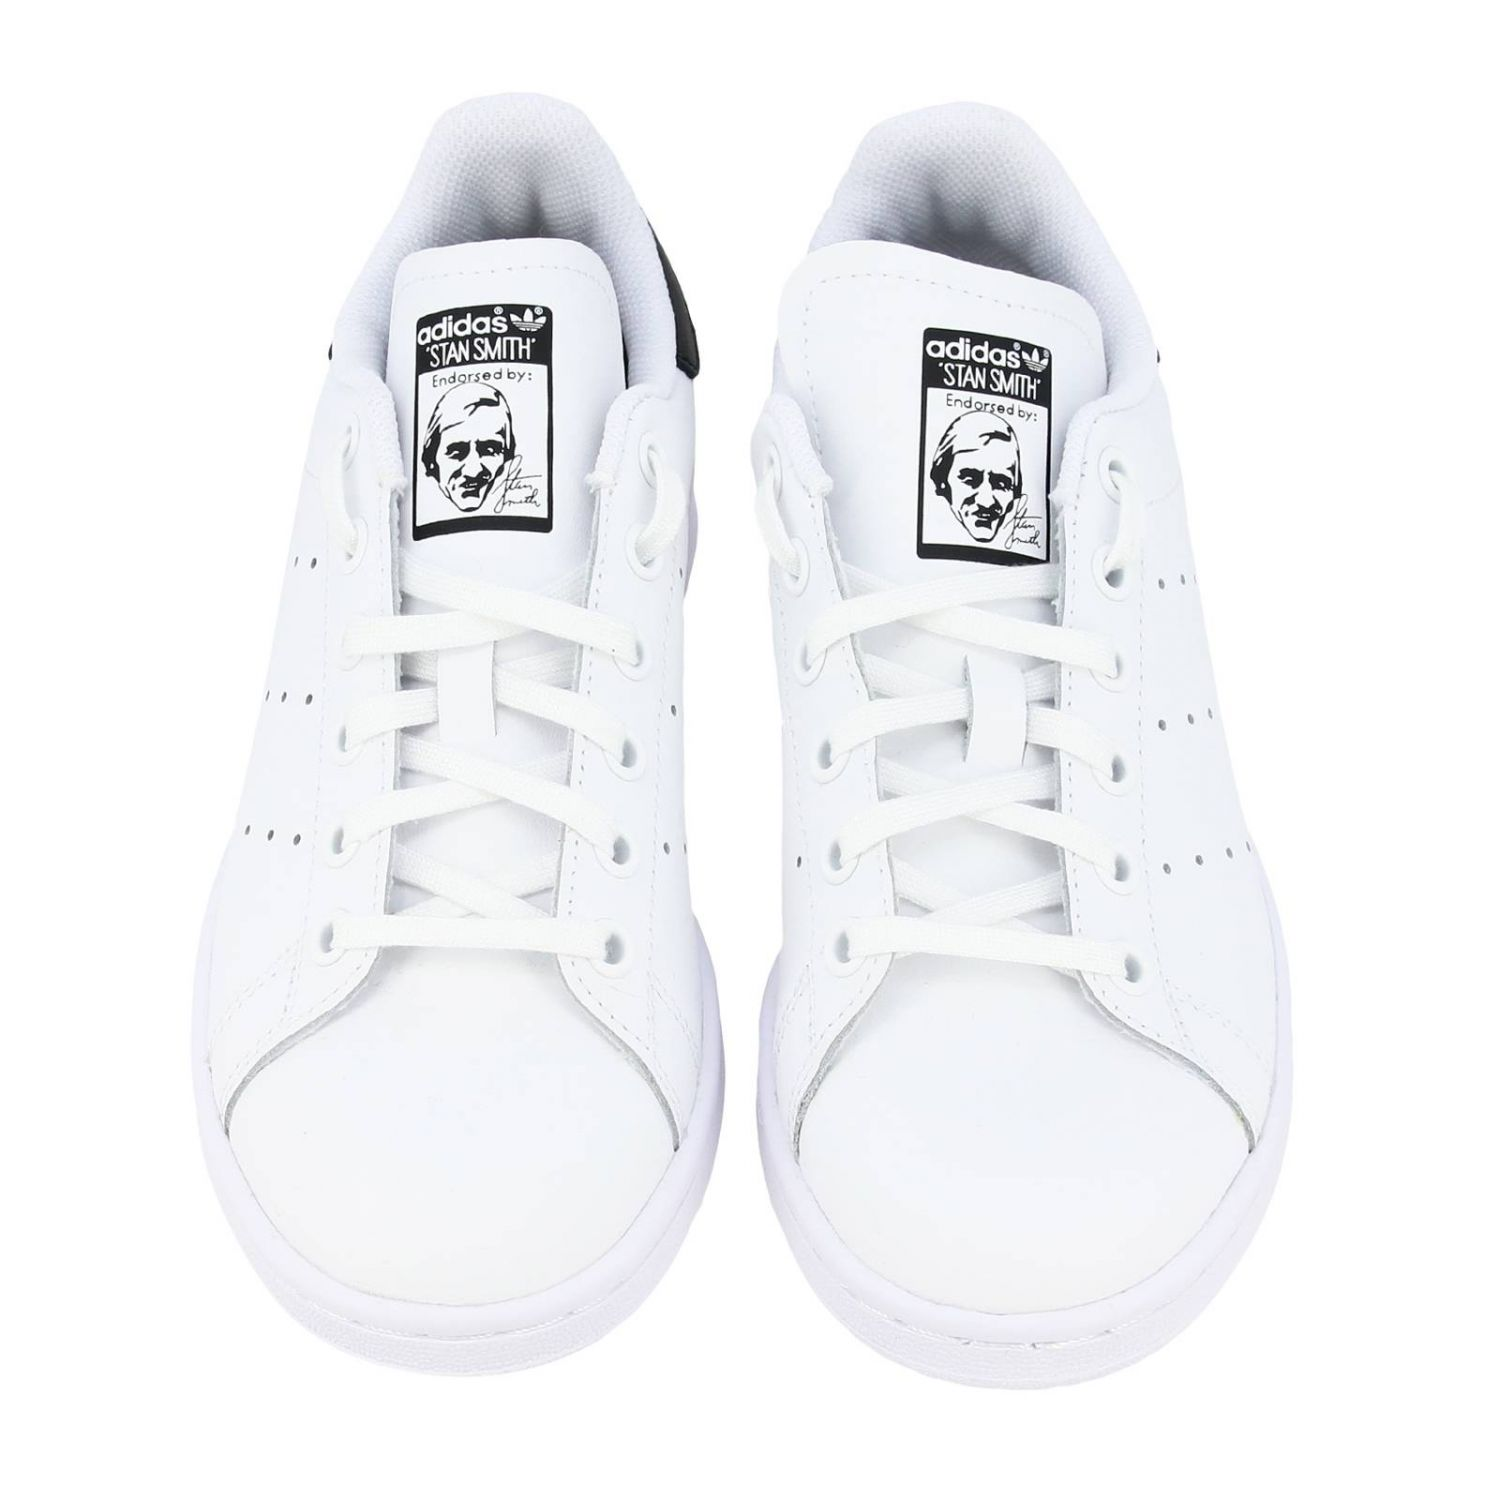 鞋履 Adidas Originals: Adidas Originals Stan Smith 真皮对比后跟运动鞋 白色 3